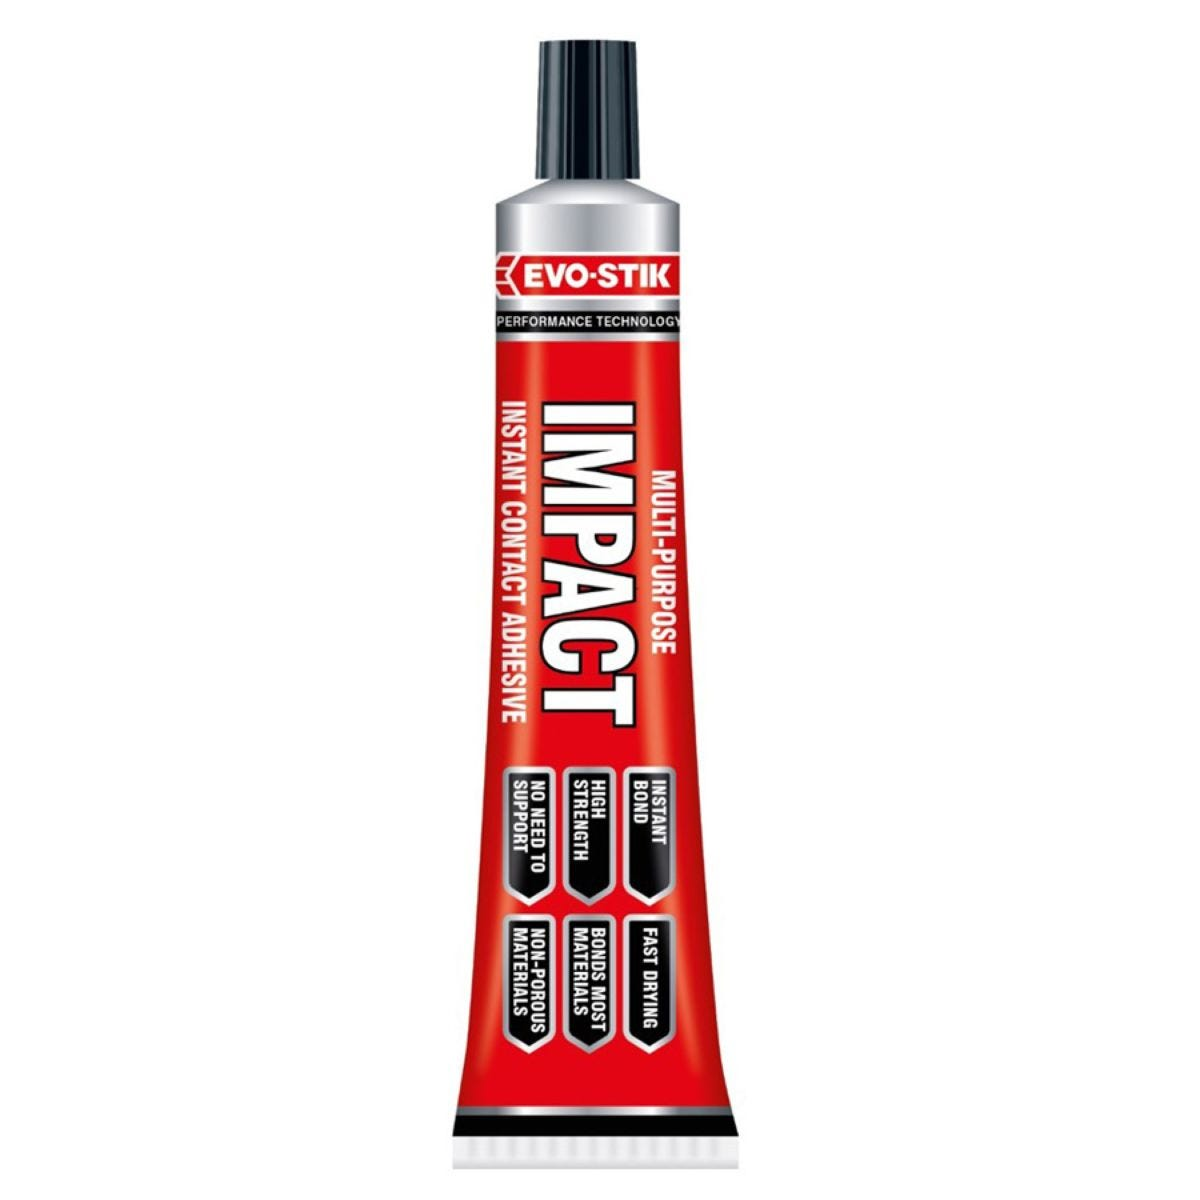 Evo-stik Multi-purpose Instant Contact Adhesive